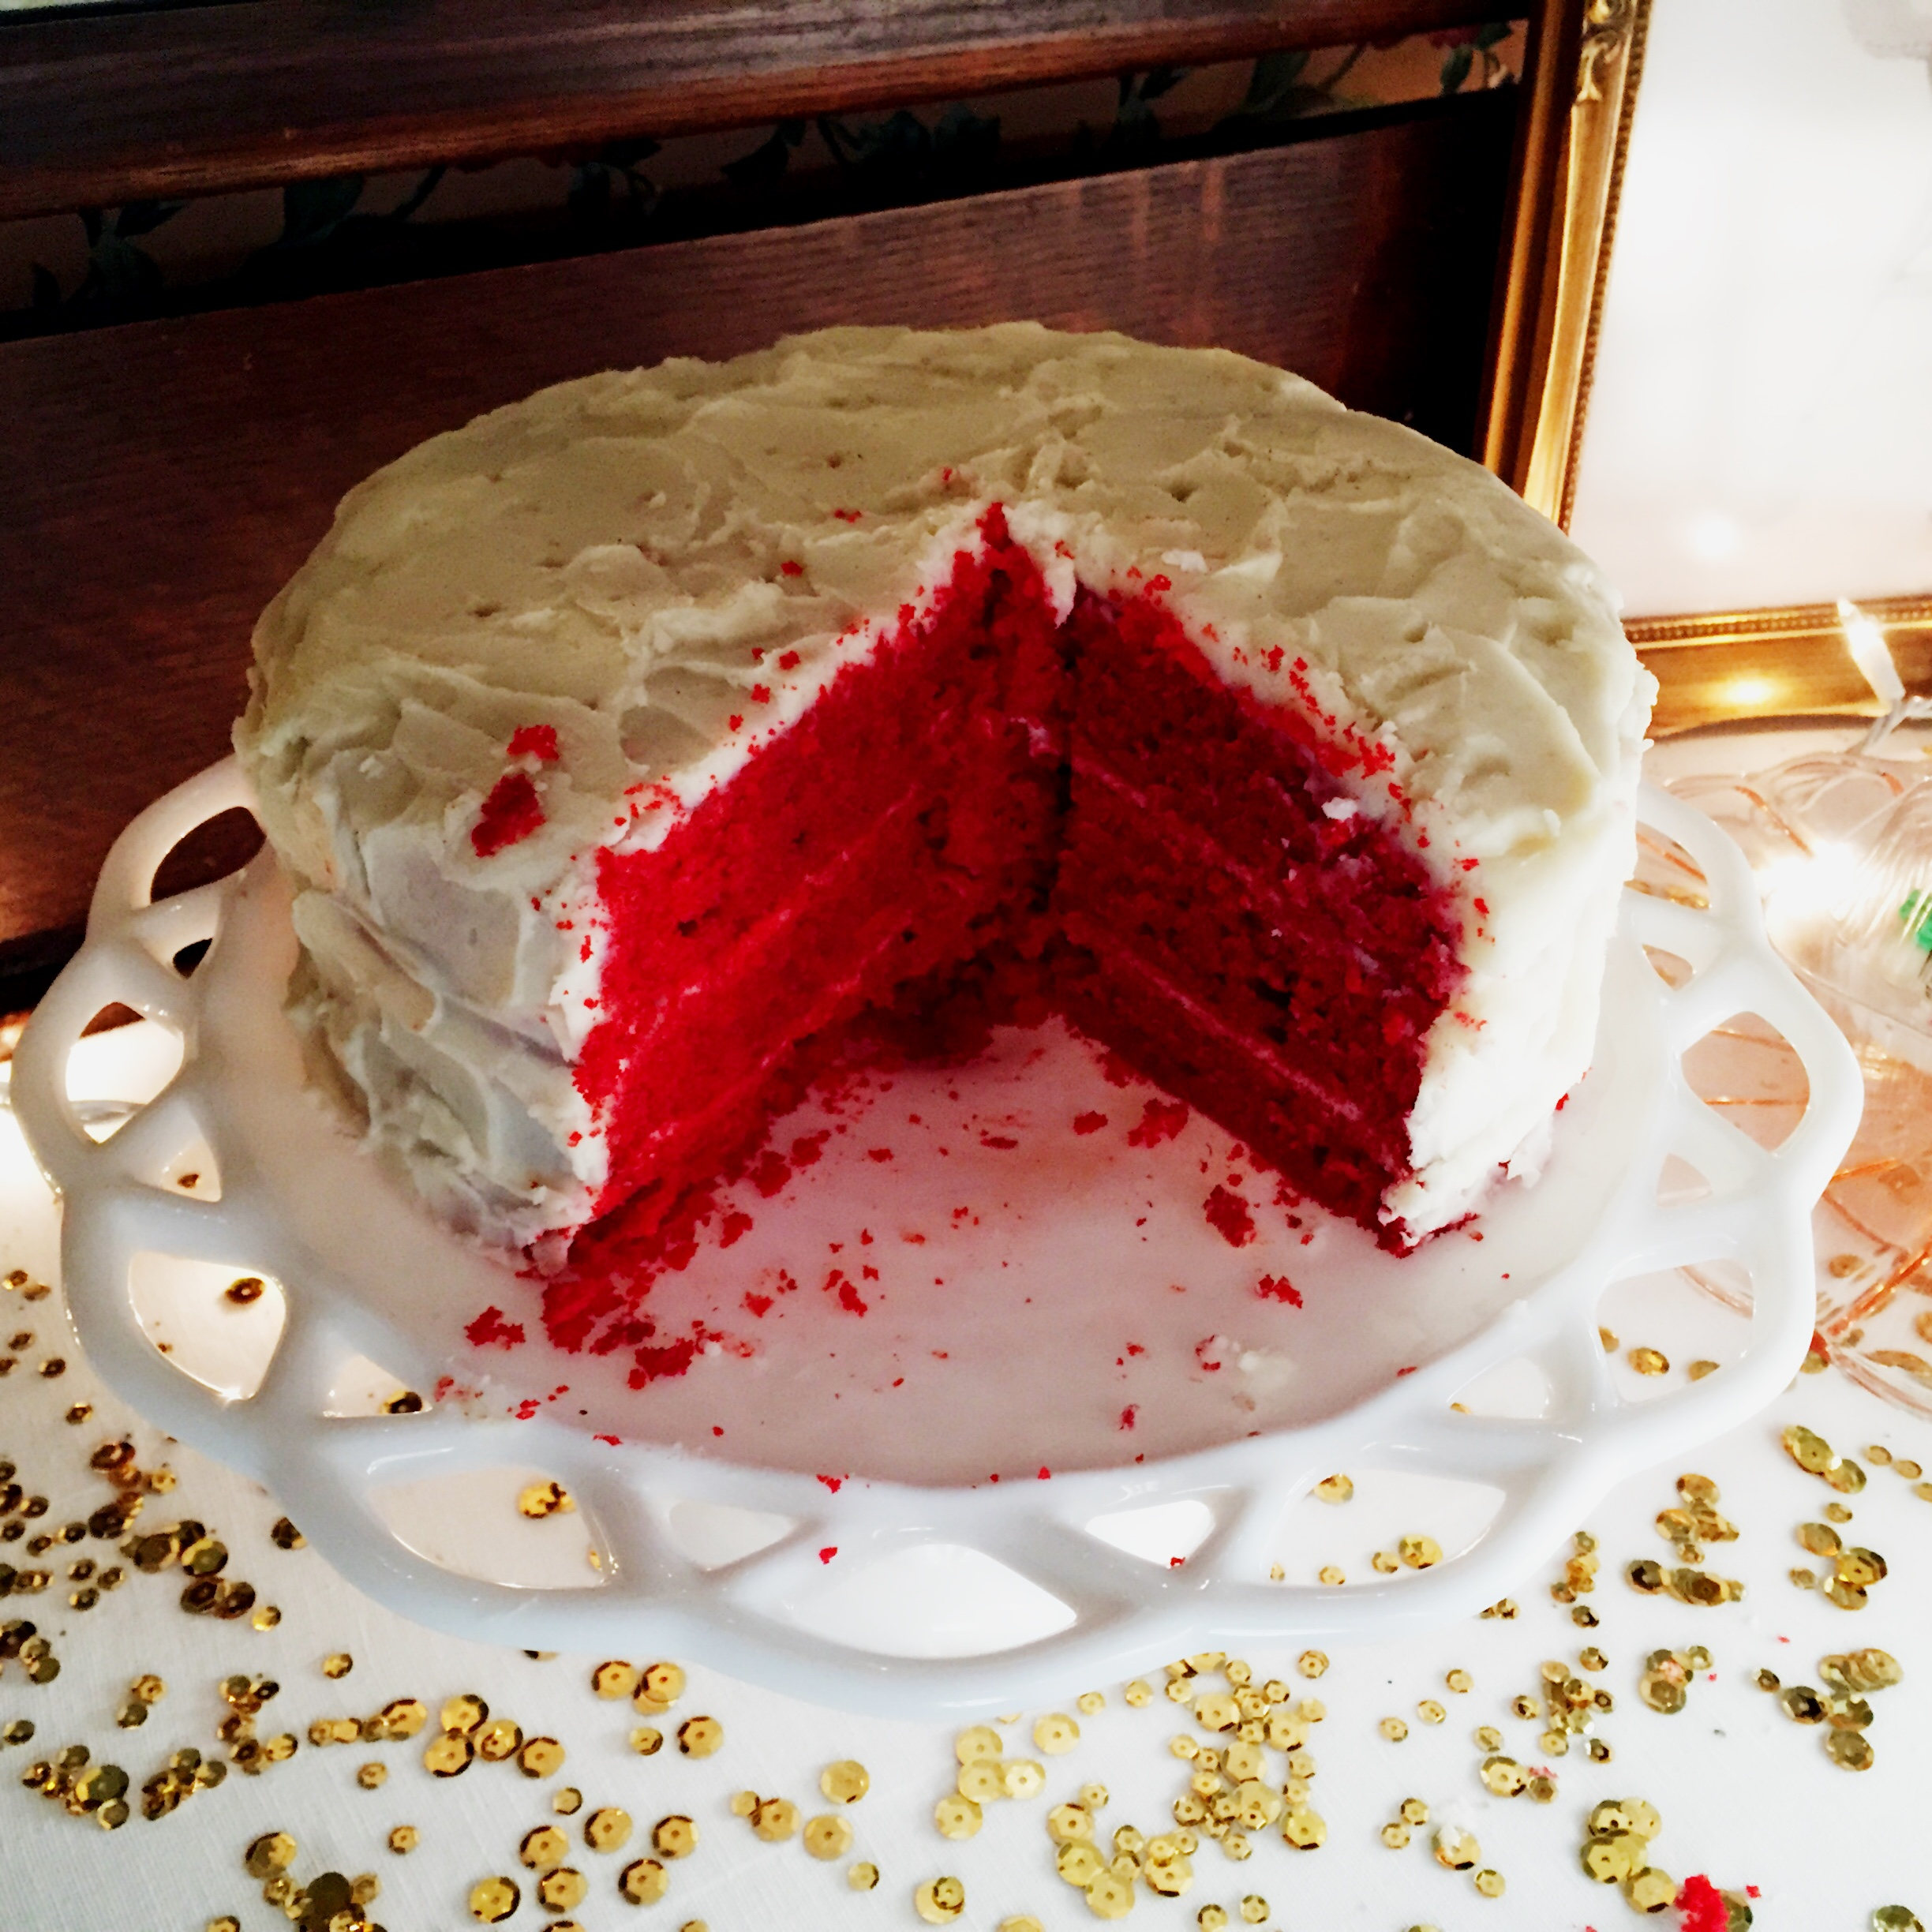 This red velvet cake is seriously the best! And it has the most delicious cream cheese icing!!